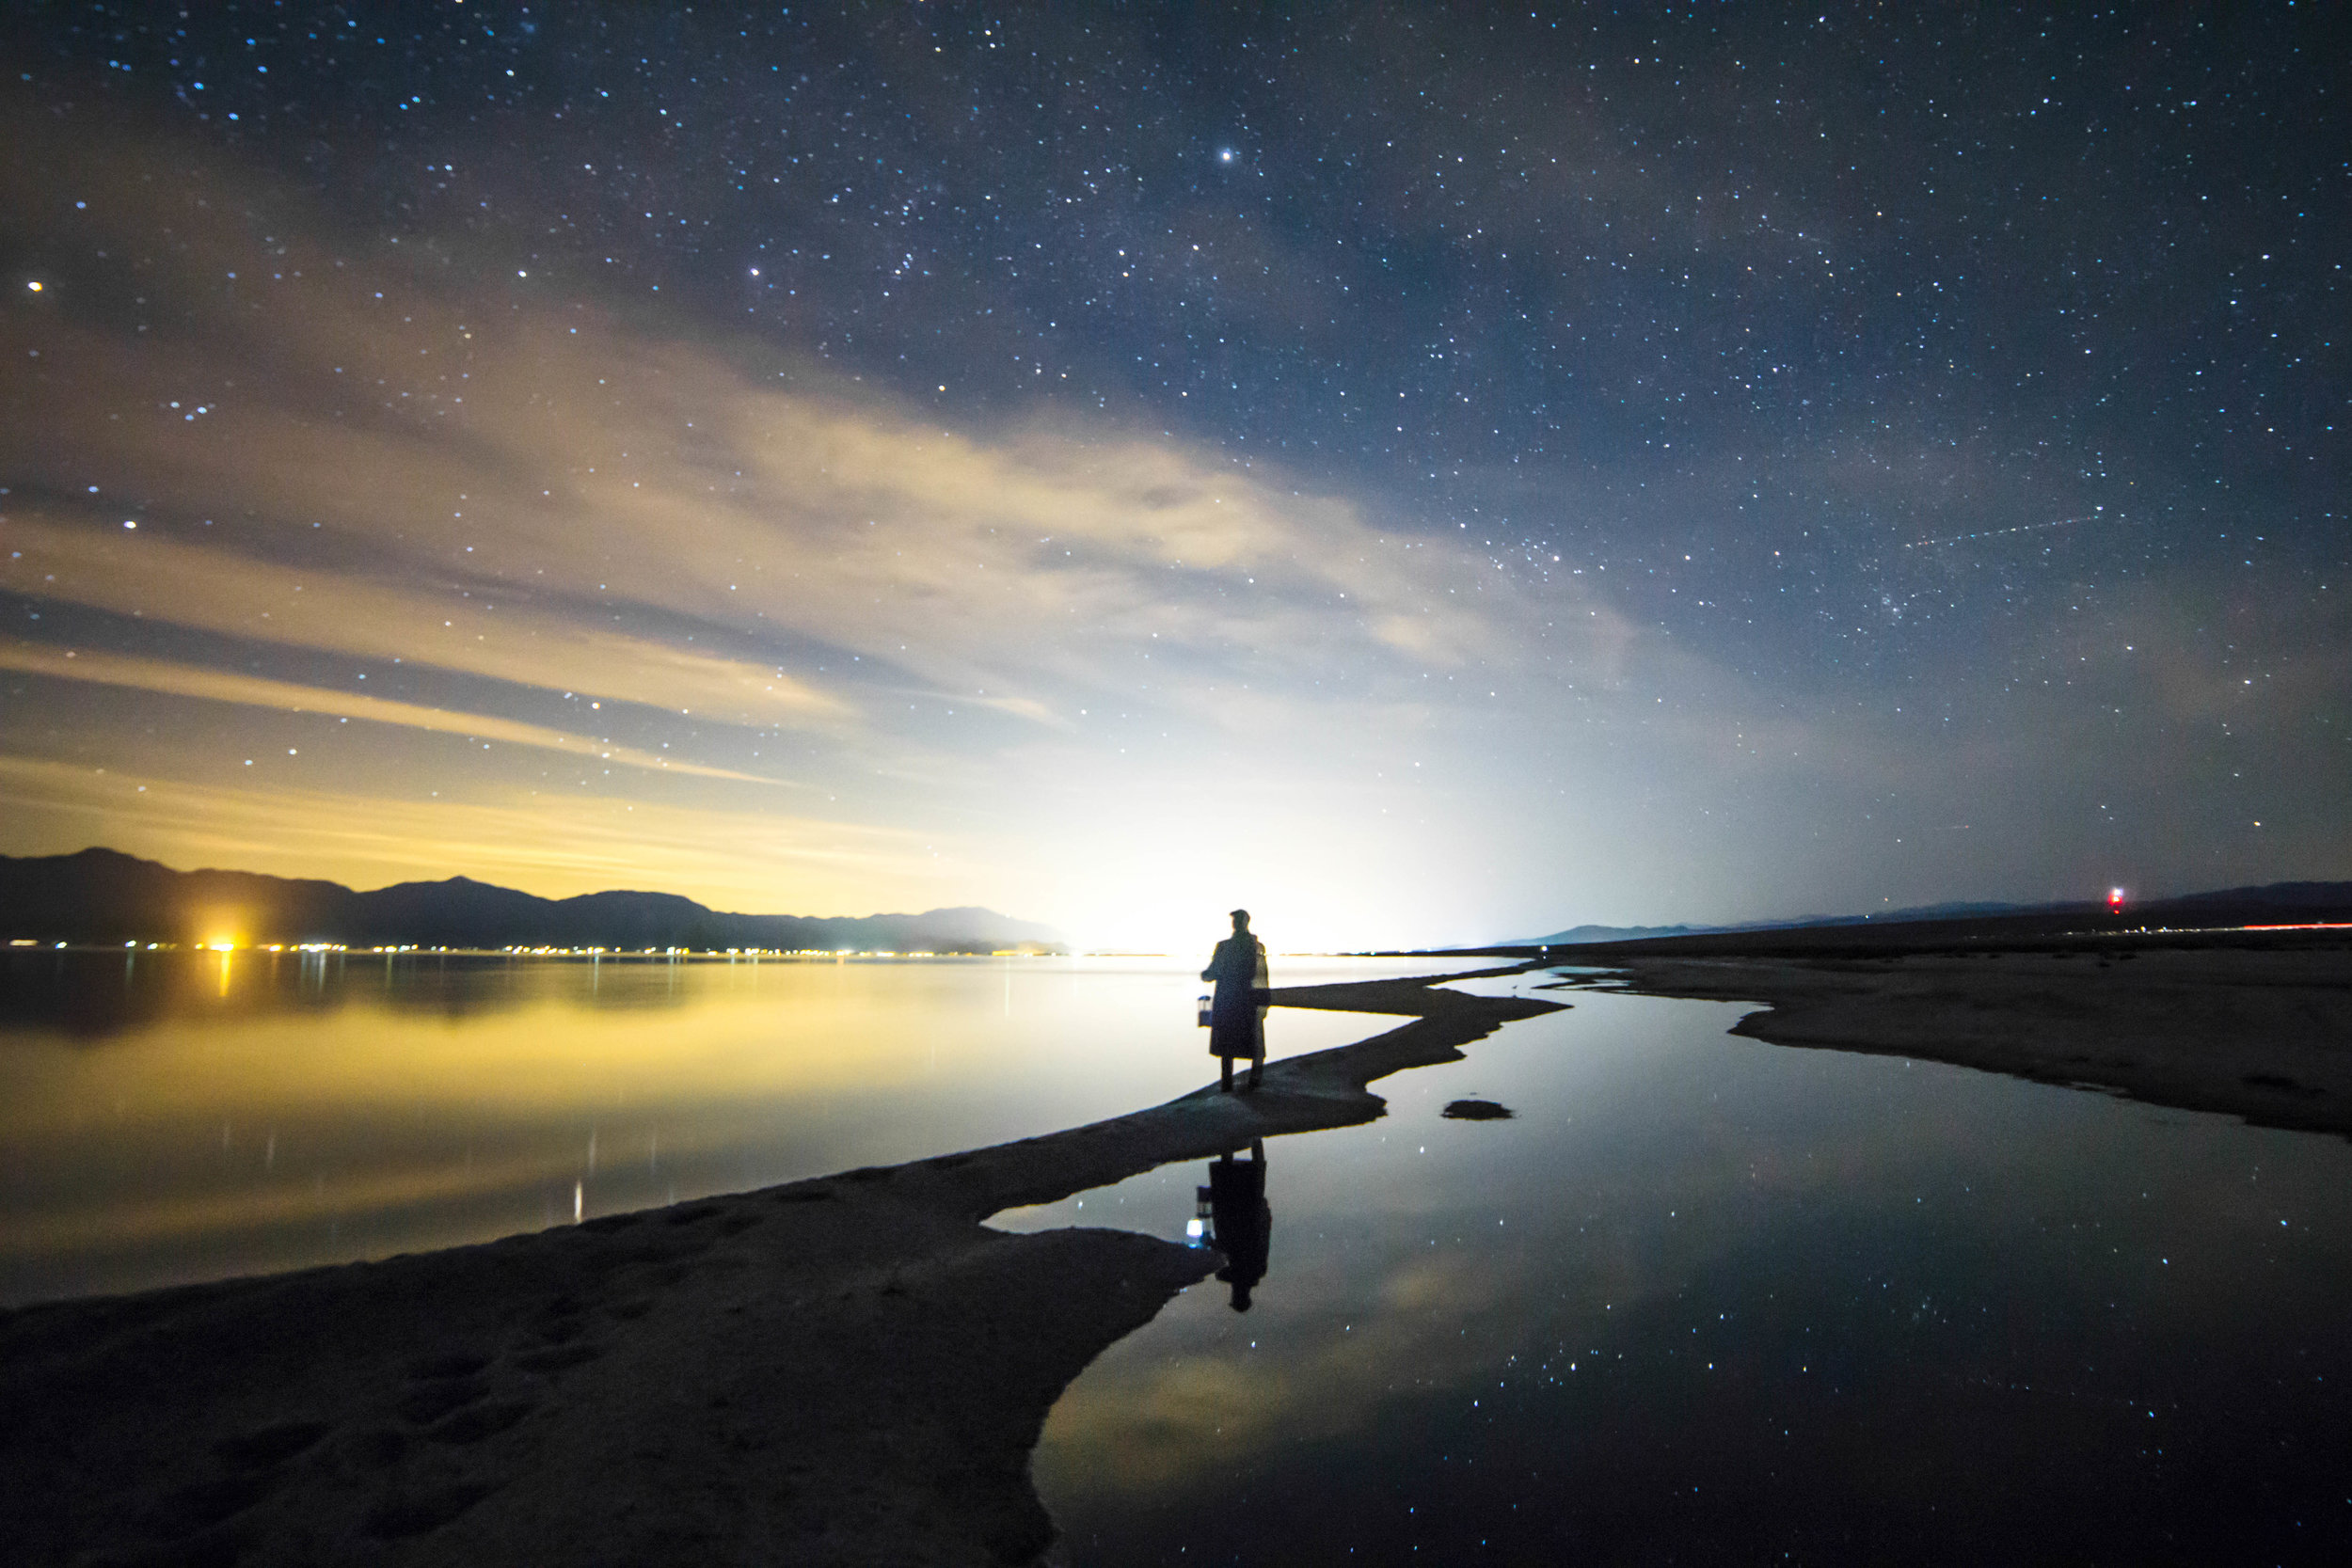 Stars might as well be considered a poor man's diamonds. With so many light polluted cities, sighting them in their true magnitude has become rare, but its still free.